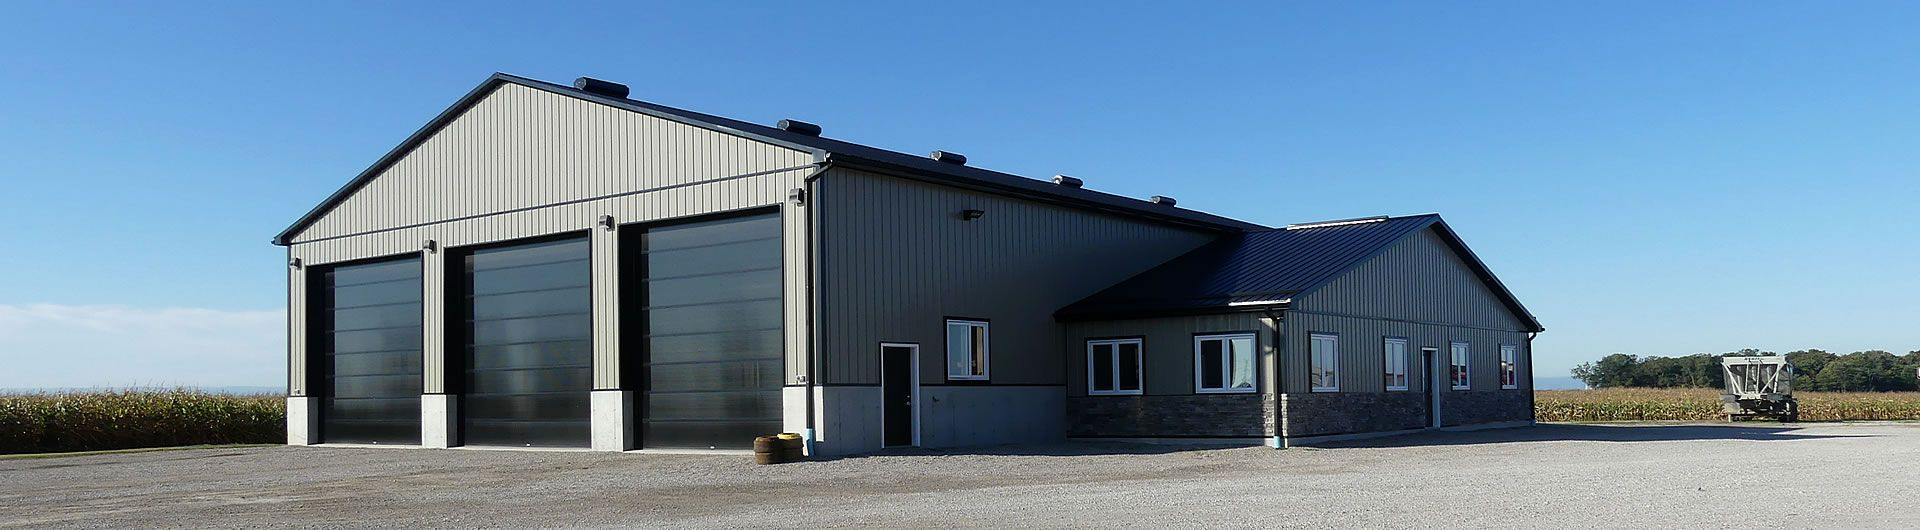 Farm bulding with 3 overhead doors